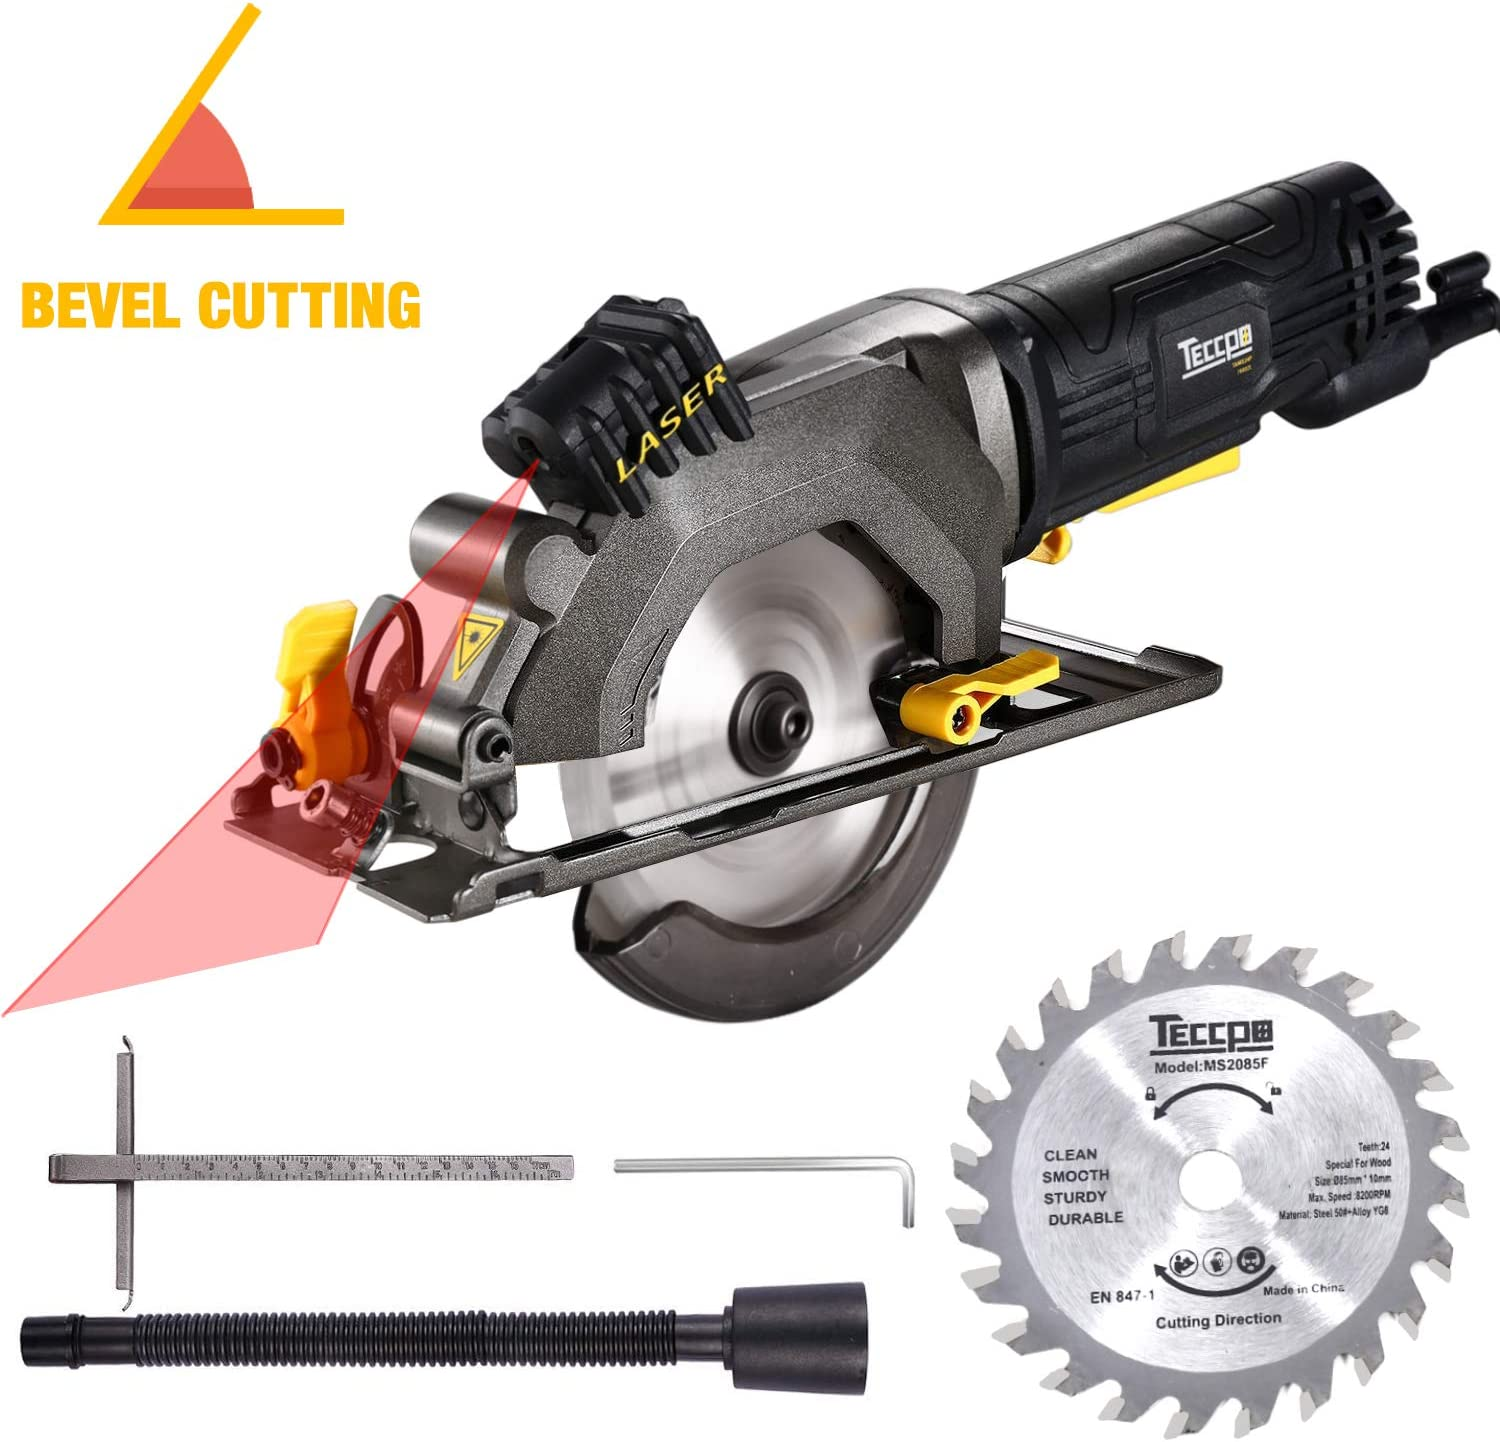 Circular Saw, TECCPO 4-1 2 3500 RPM 4 Amp Compact Circular Saw with Laser Guide, 24T Carbide Tipped Blade, Scale Ruler, Pure Copper Motor, Max Cutting Depth 1-11 16 90 , 1-1 8 45 – TAMS24P